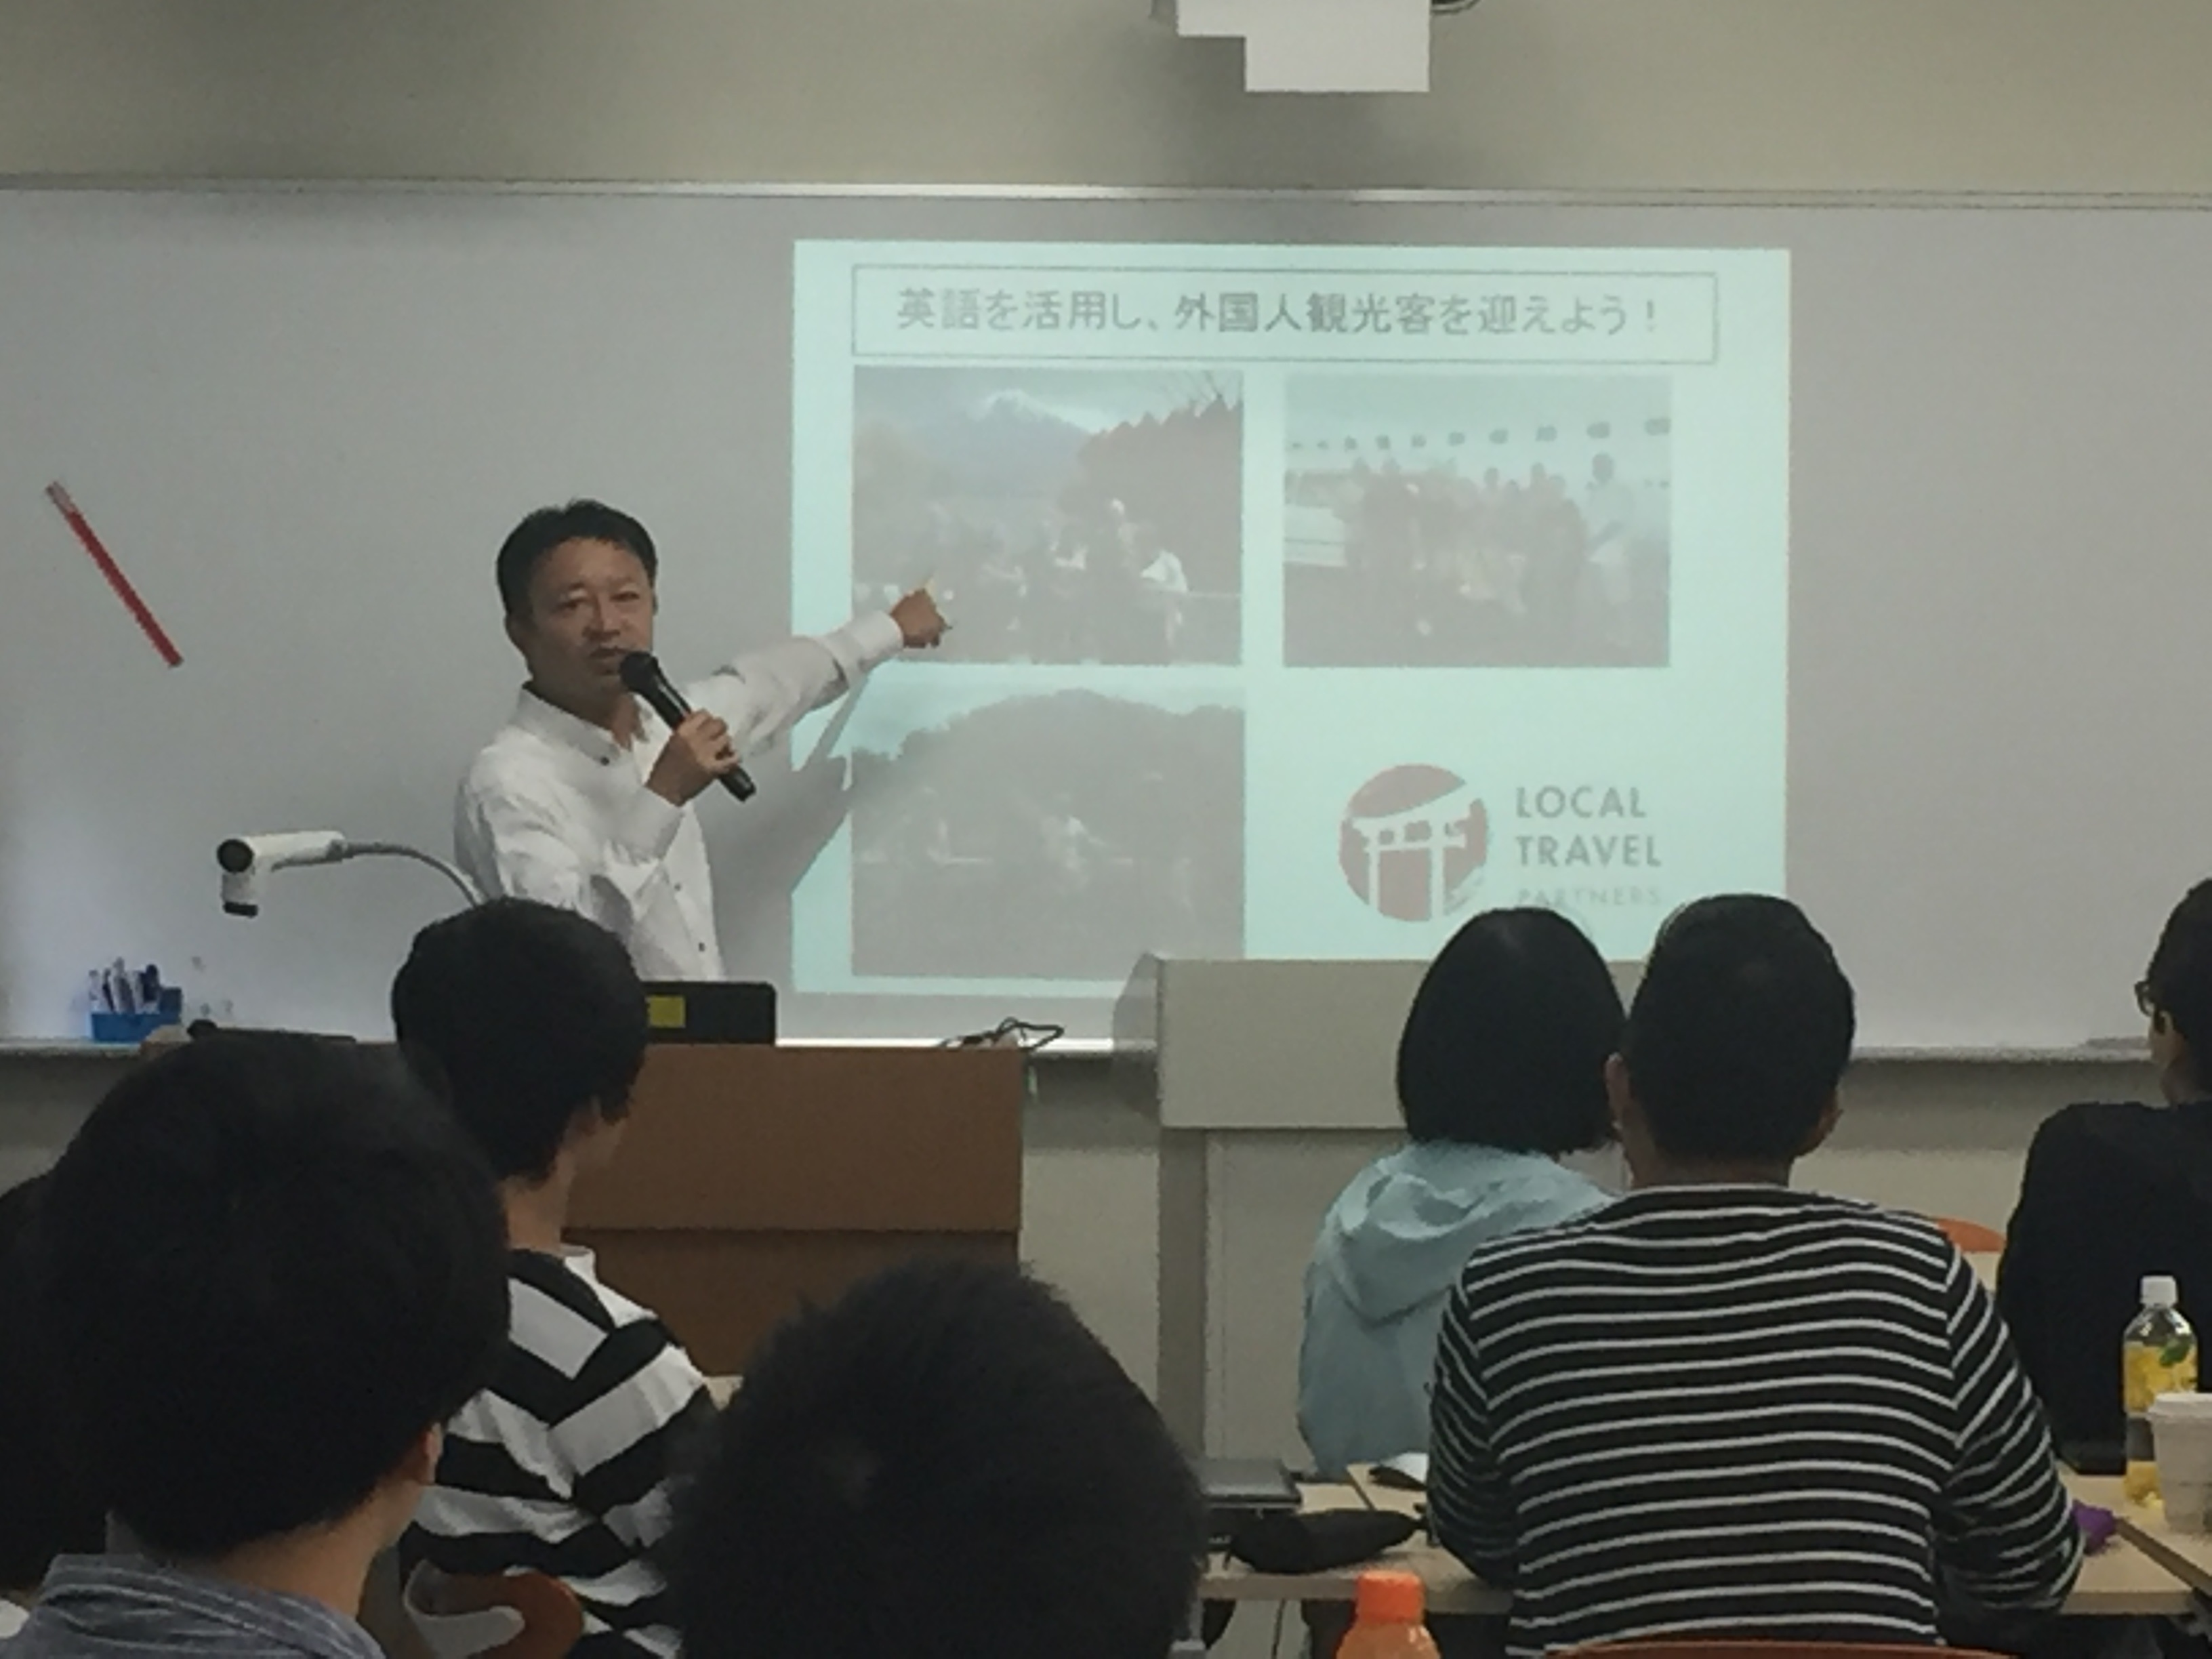 Hirokane Ishikaki a lecturer of English and tourism  at Shizuoka University